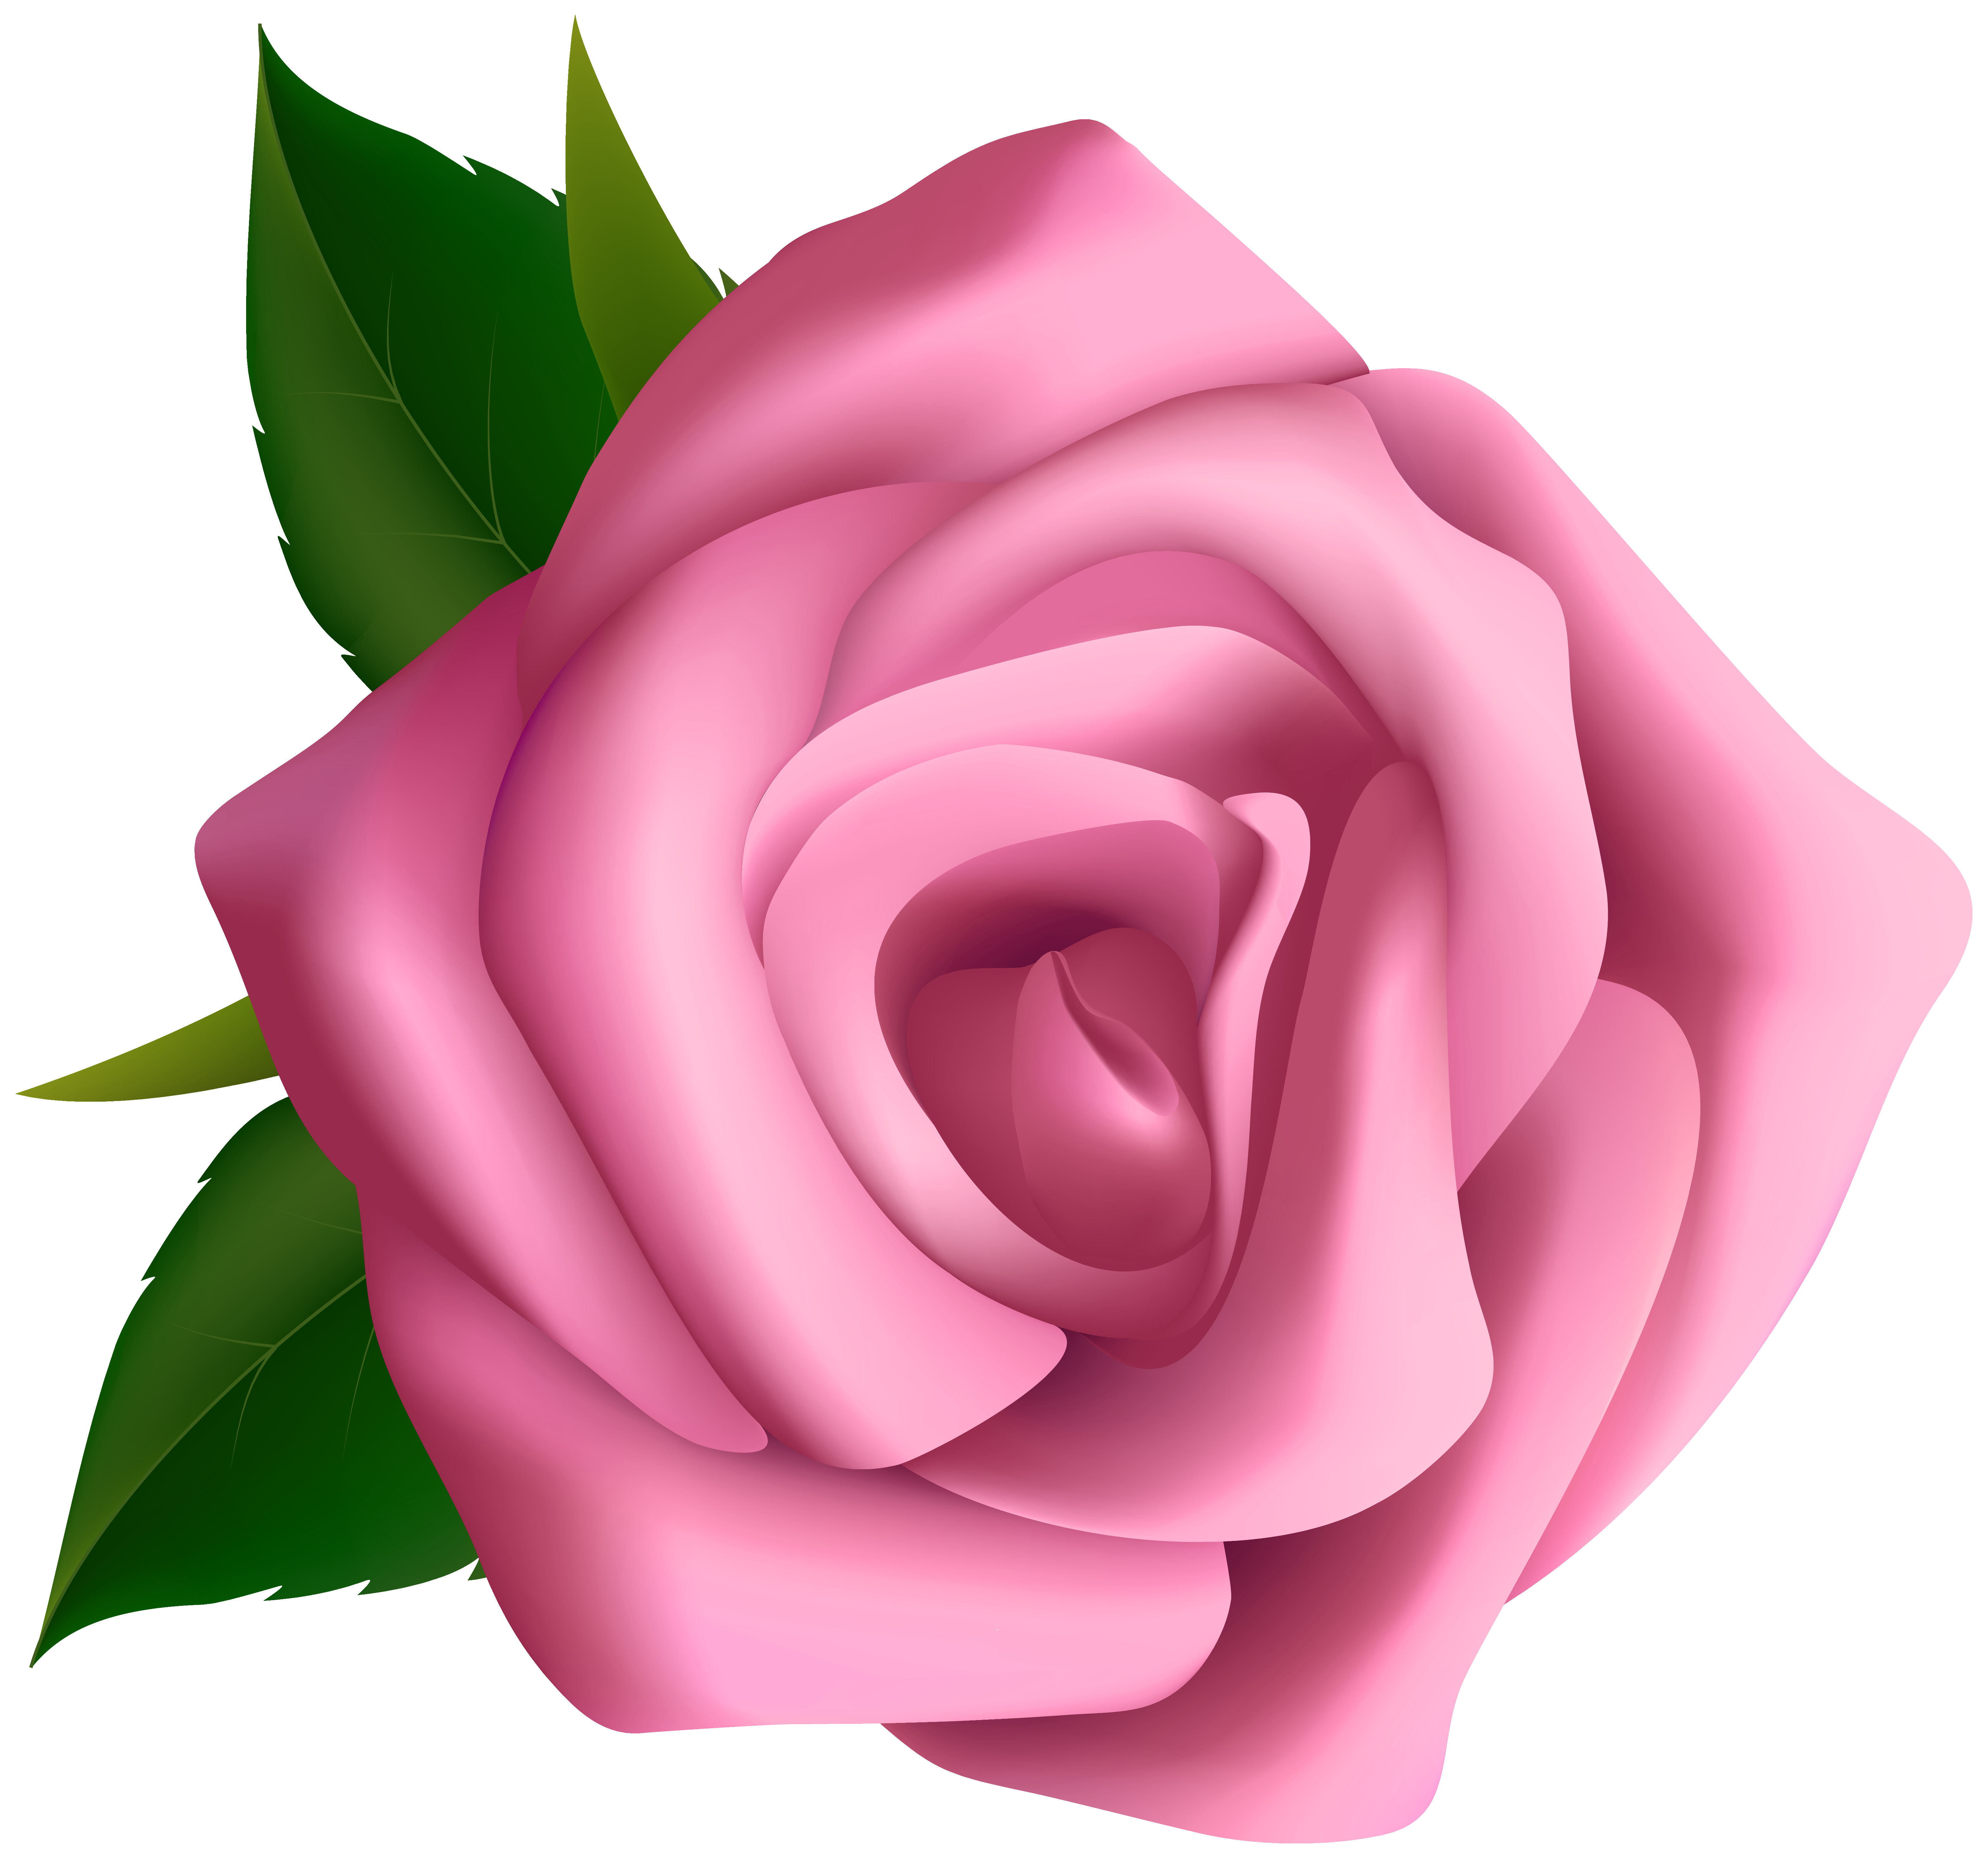 Pink Rose clipart #14